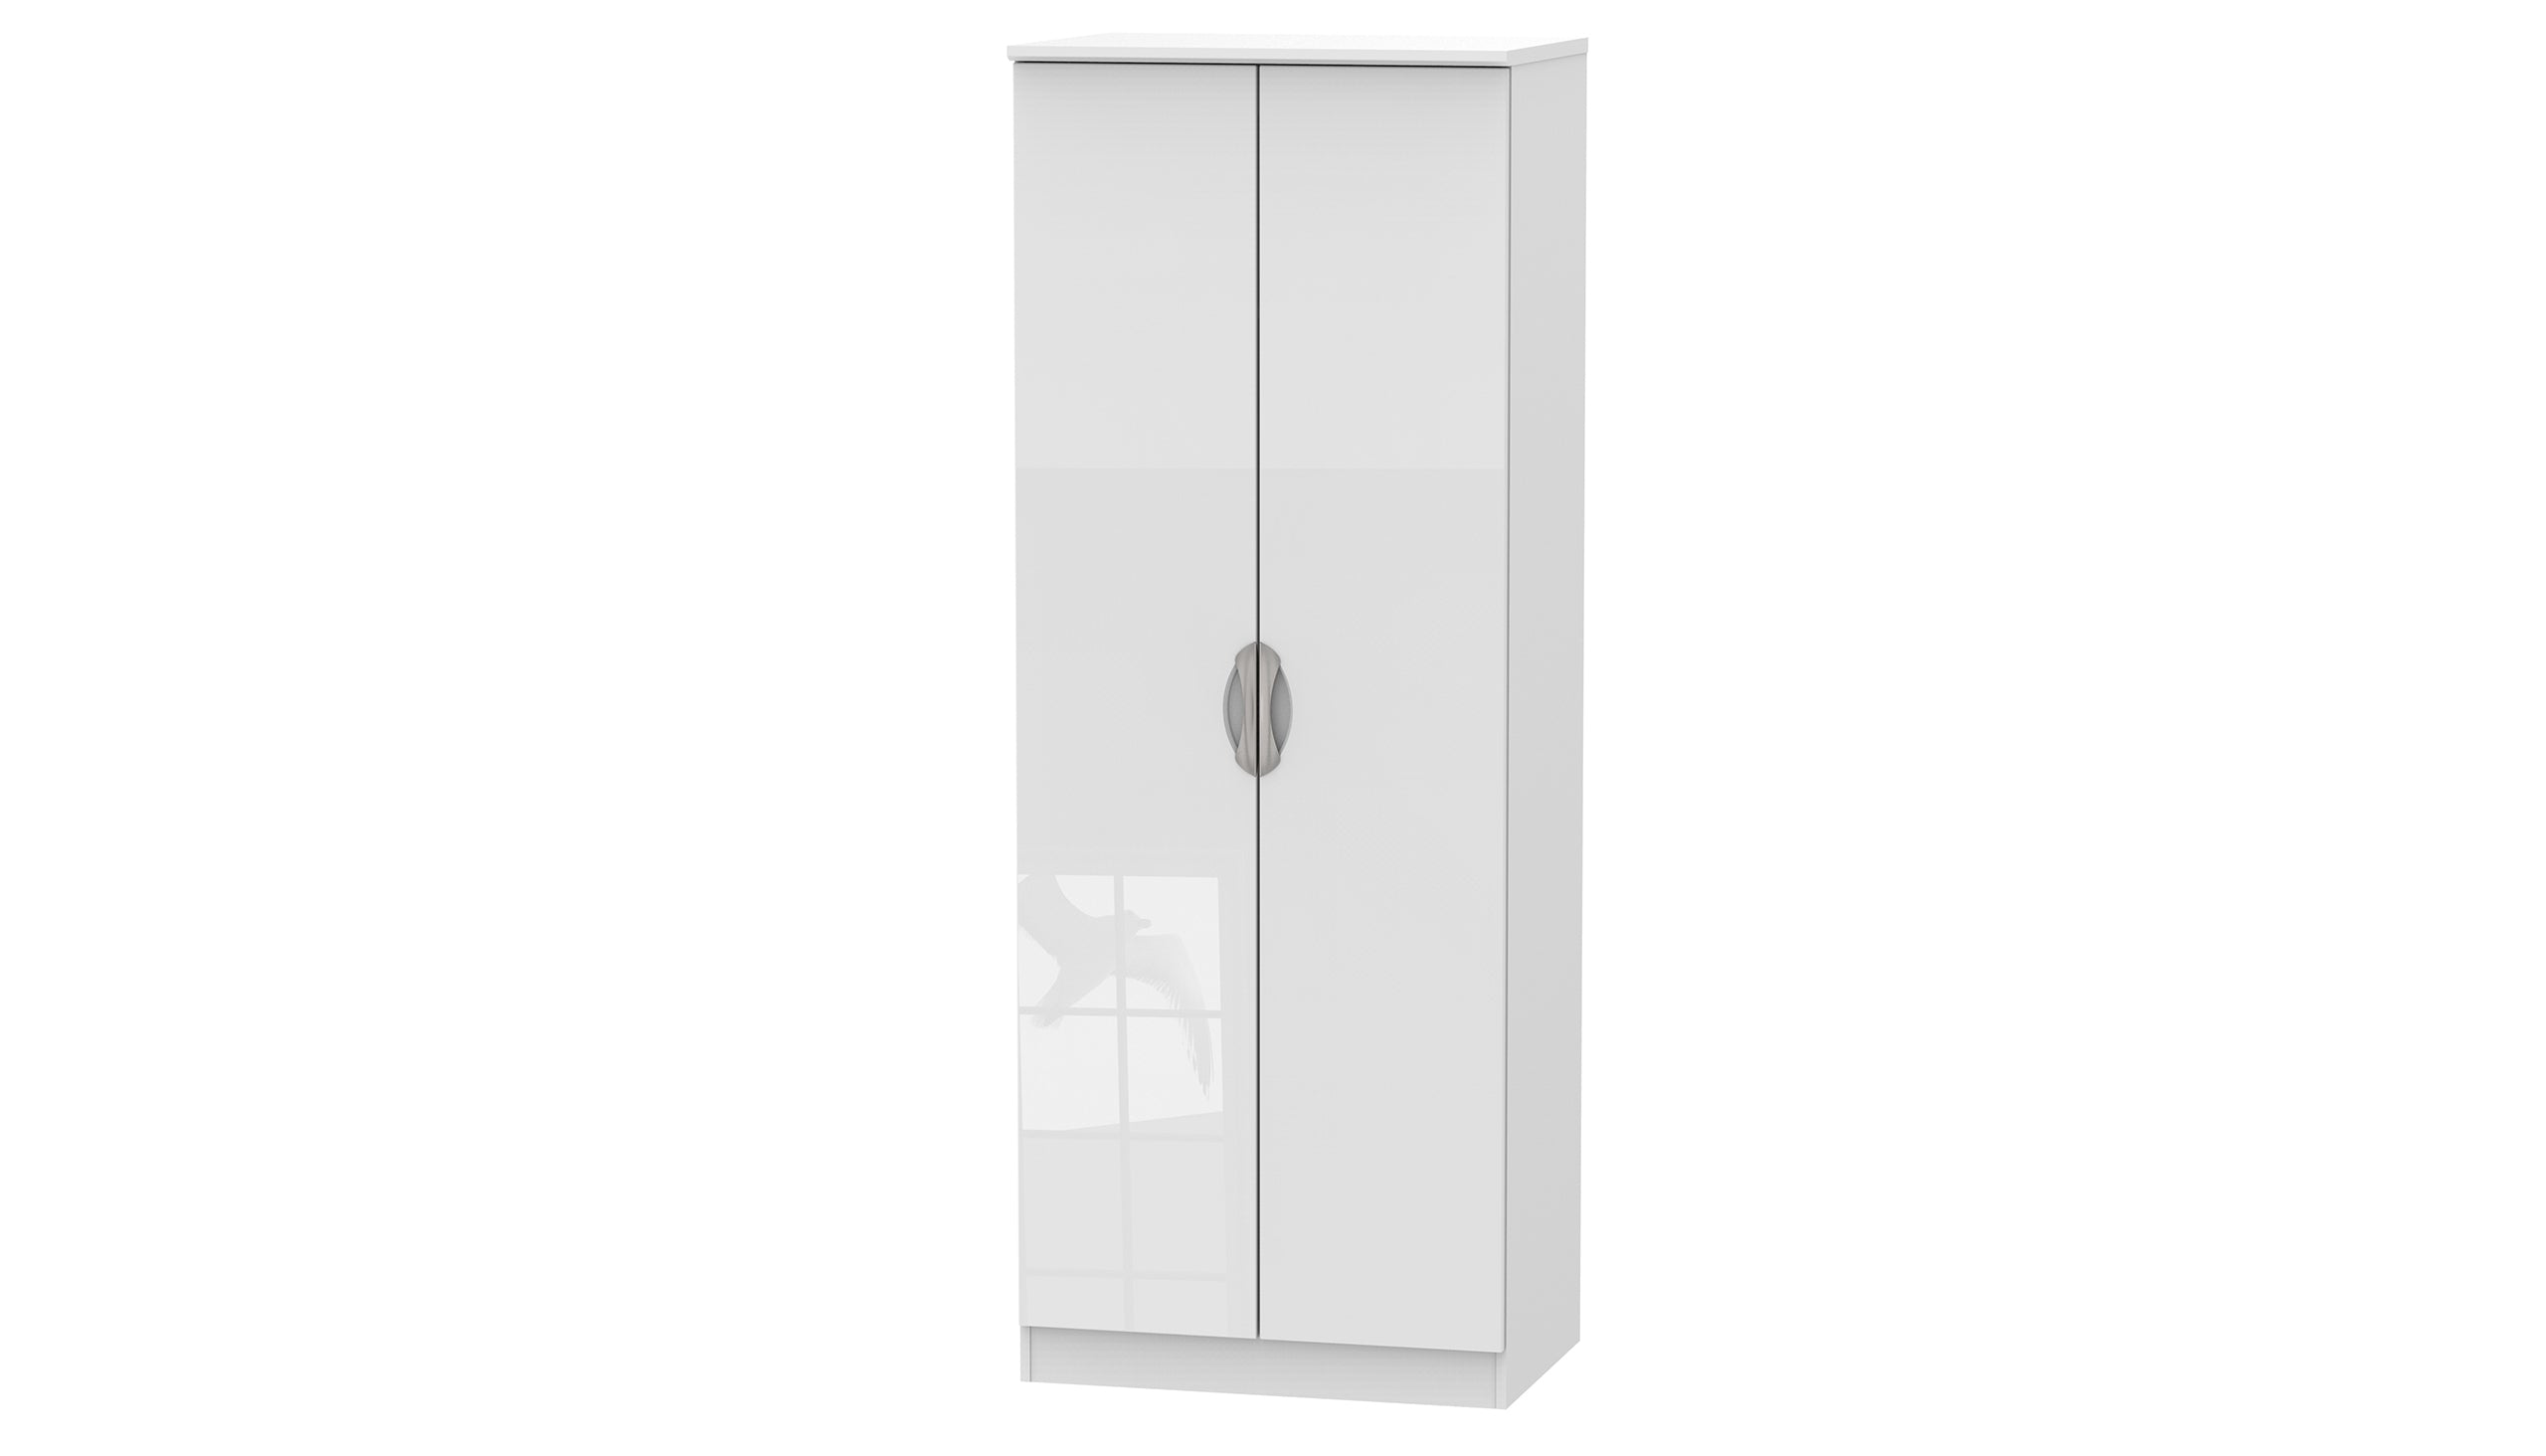 Moda Tall Double Hanging Wardrobe - AHF Furniture & Carpets